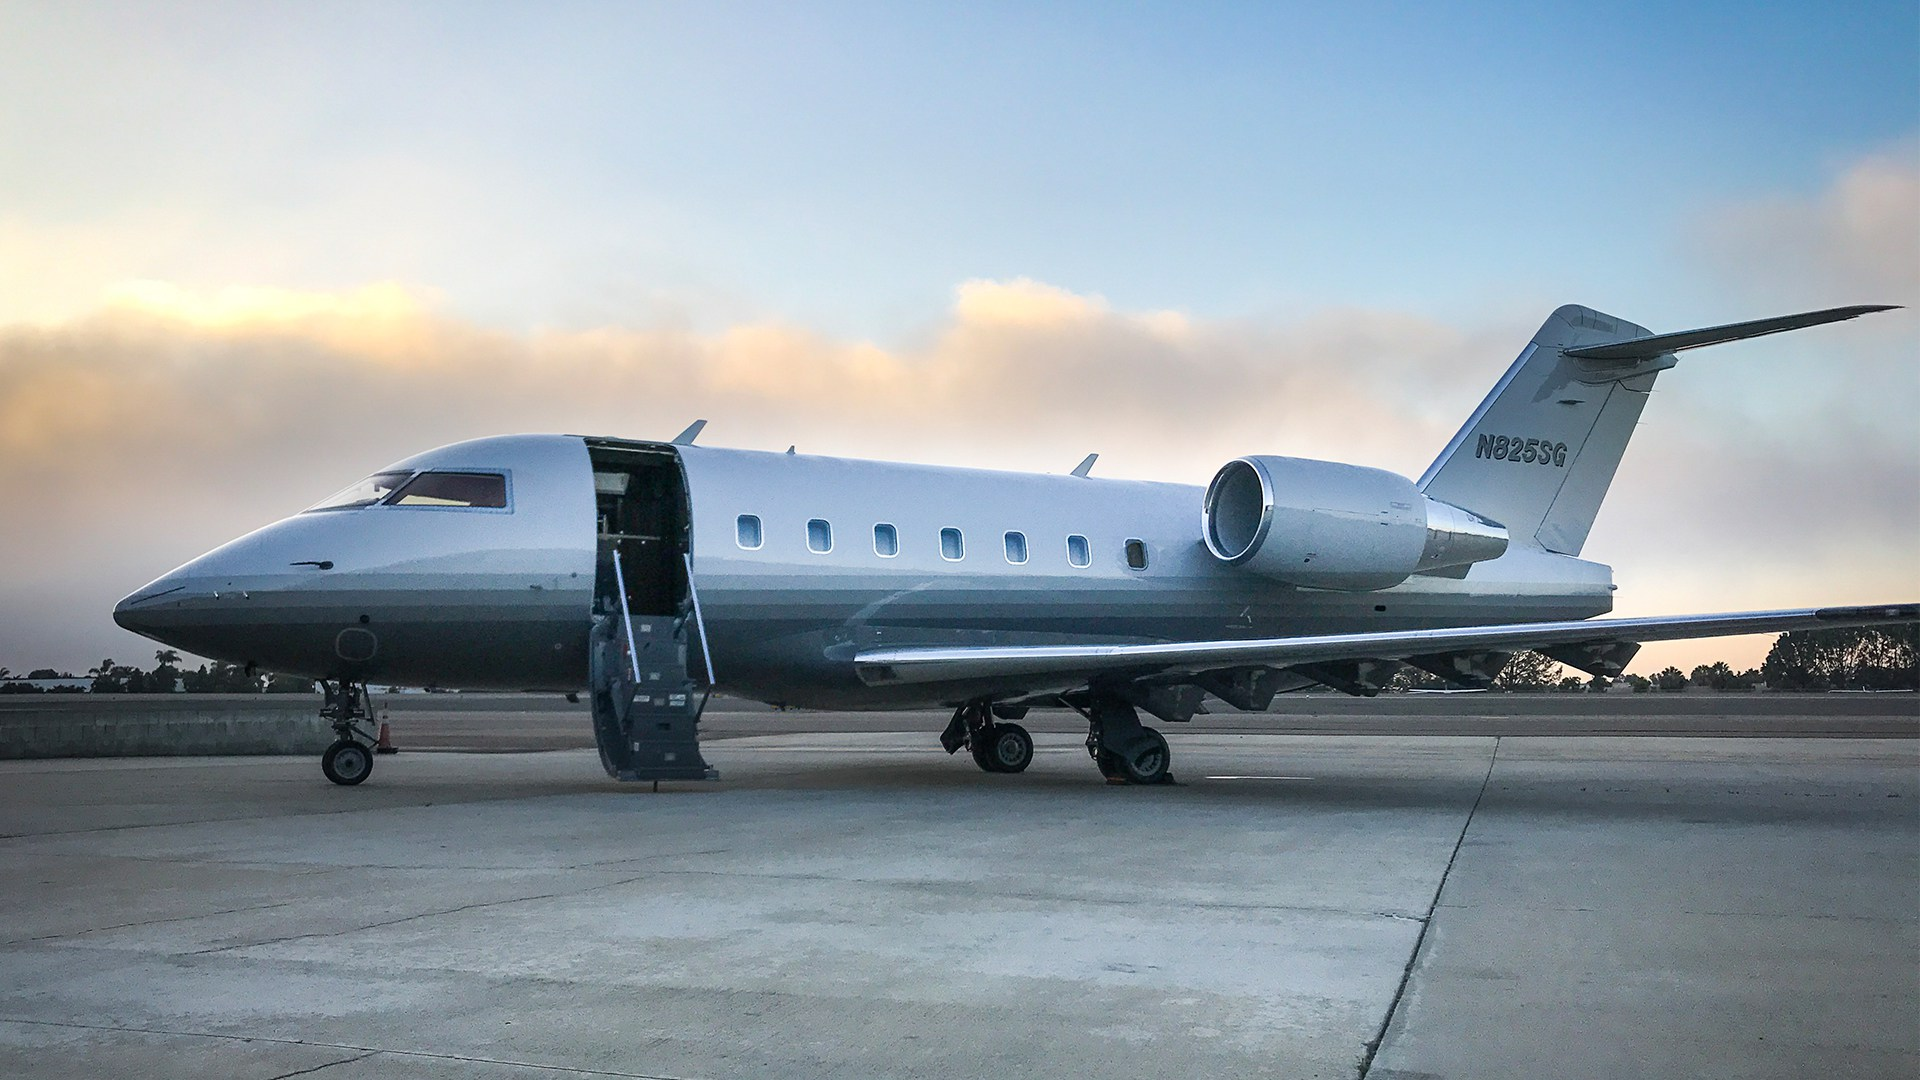 The Challenger 601 used for this flight